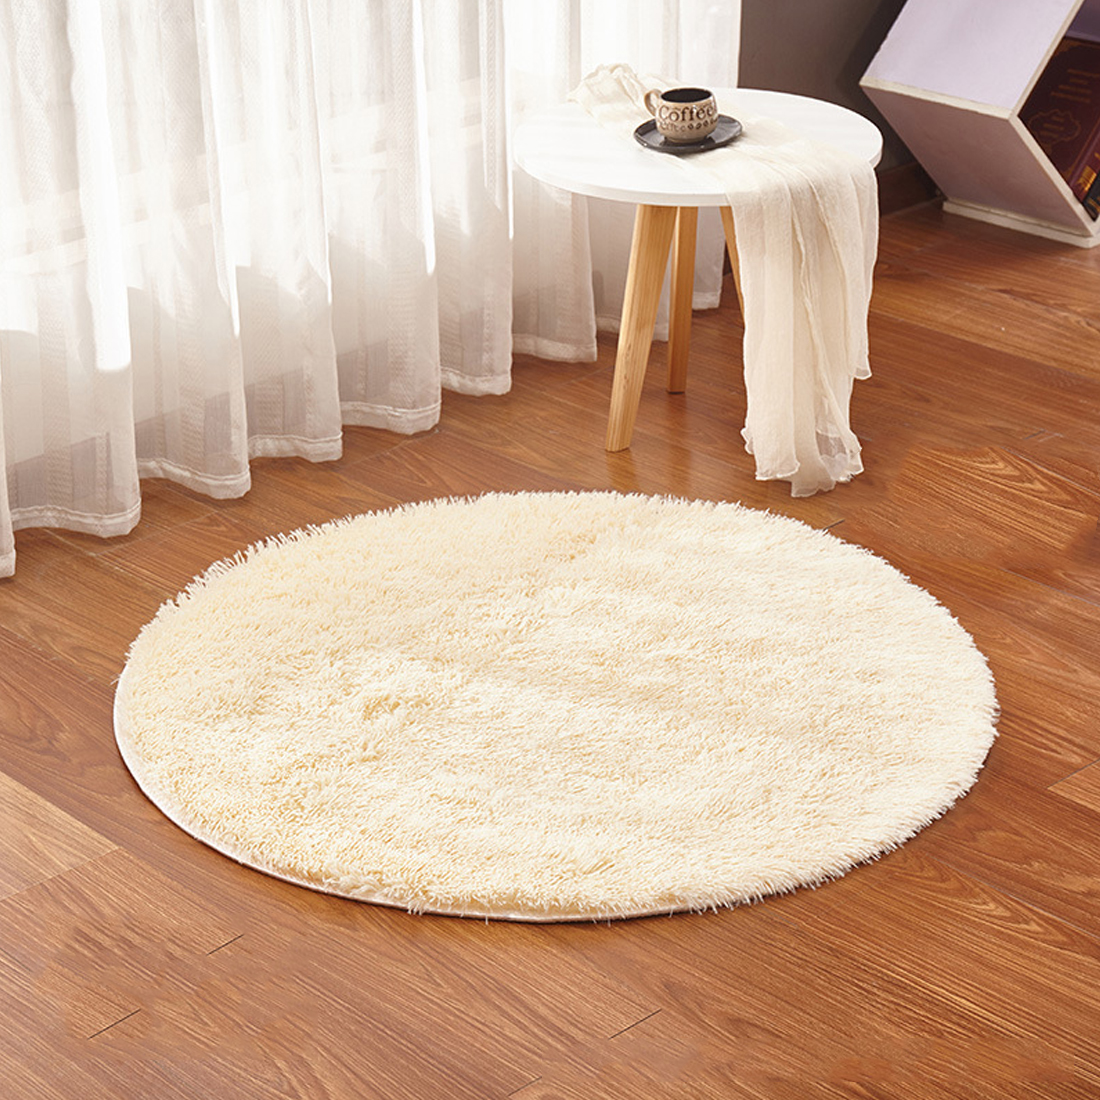 Us 1 54 45 Off New Fluffy Round Rug Carpets For Living Room Kilim Faux Fur Carpet Kids Room Long Plush Rugs For Bedroom Shaggy Area Rug In Rug From